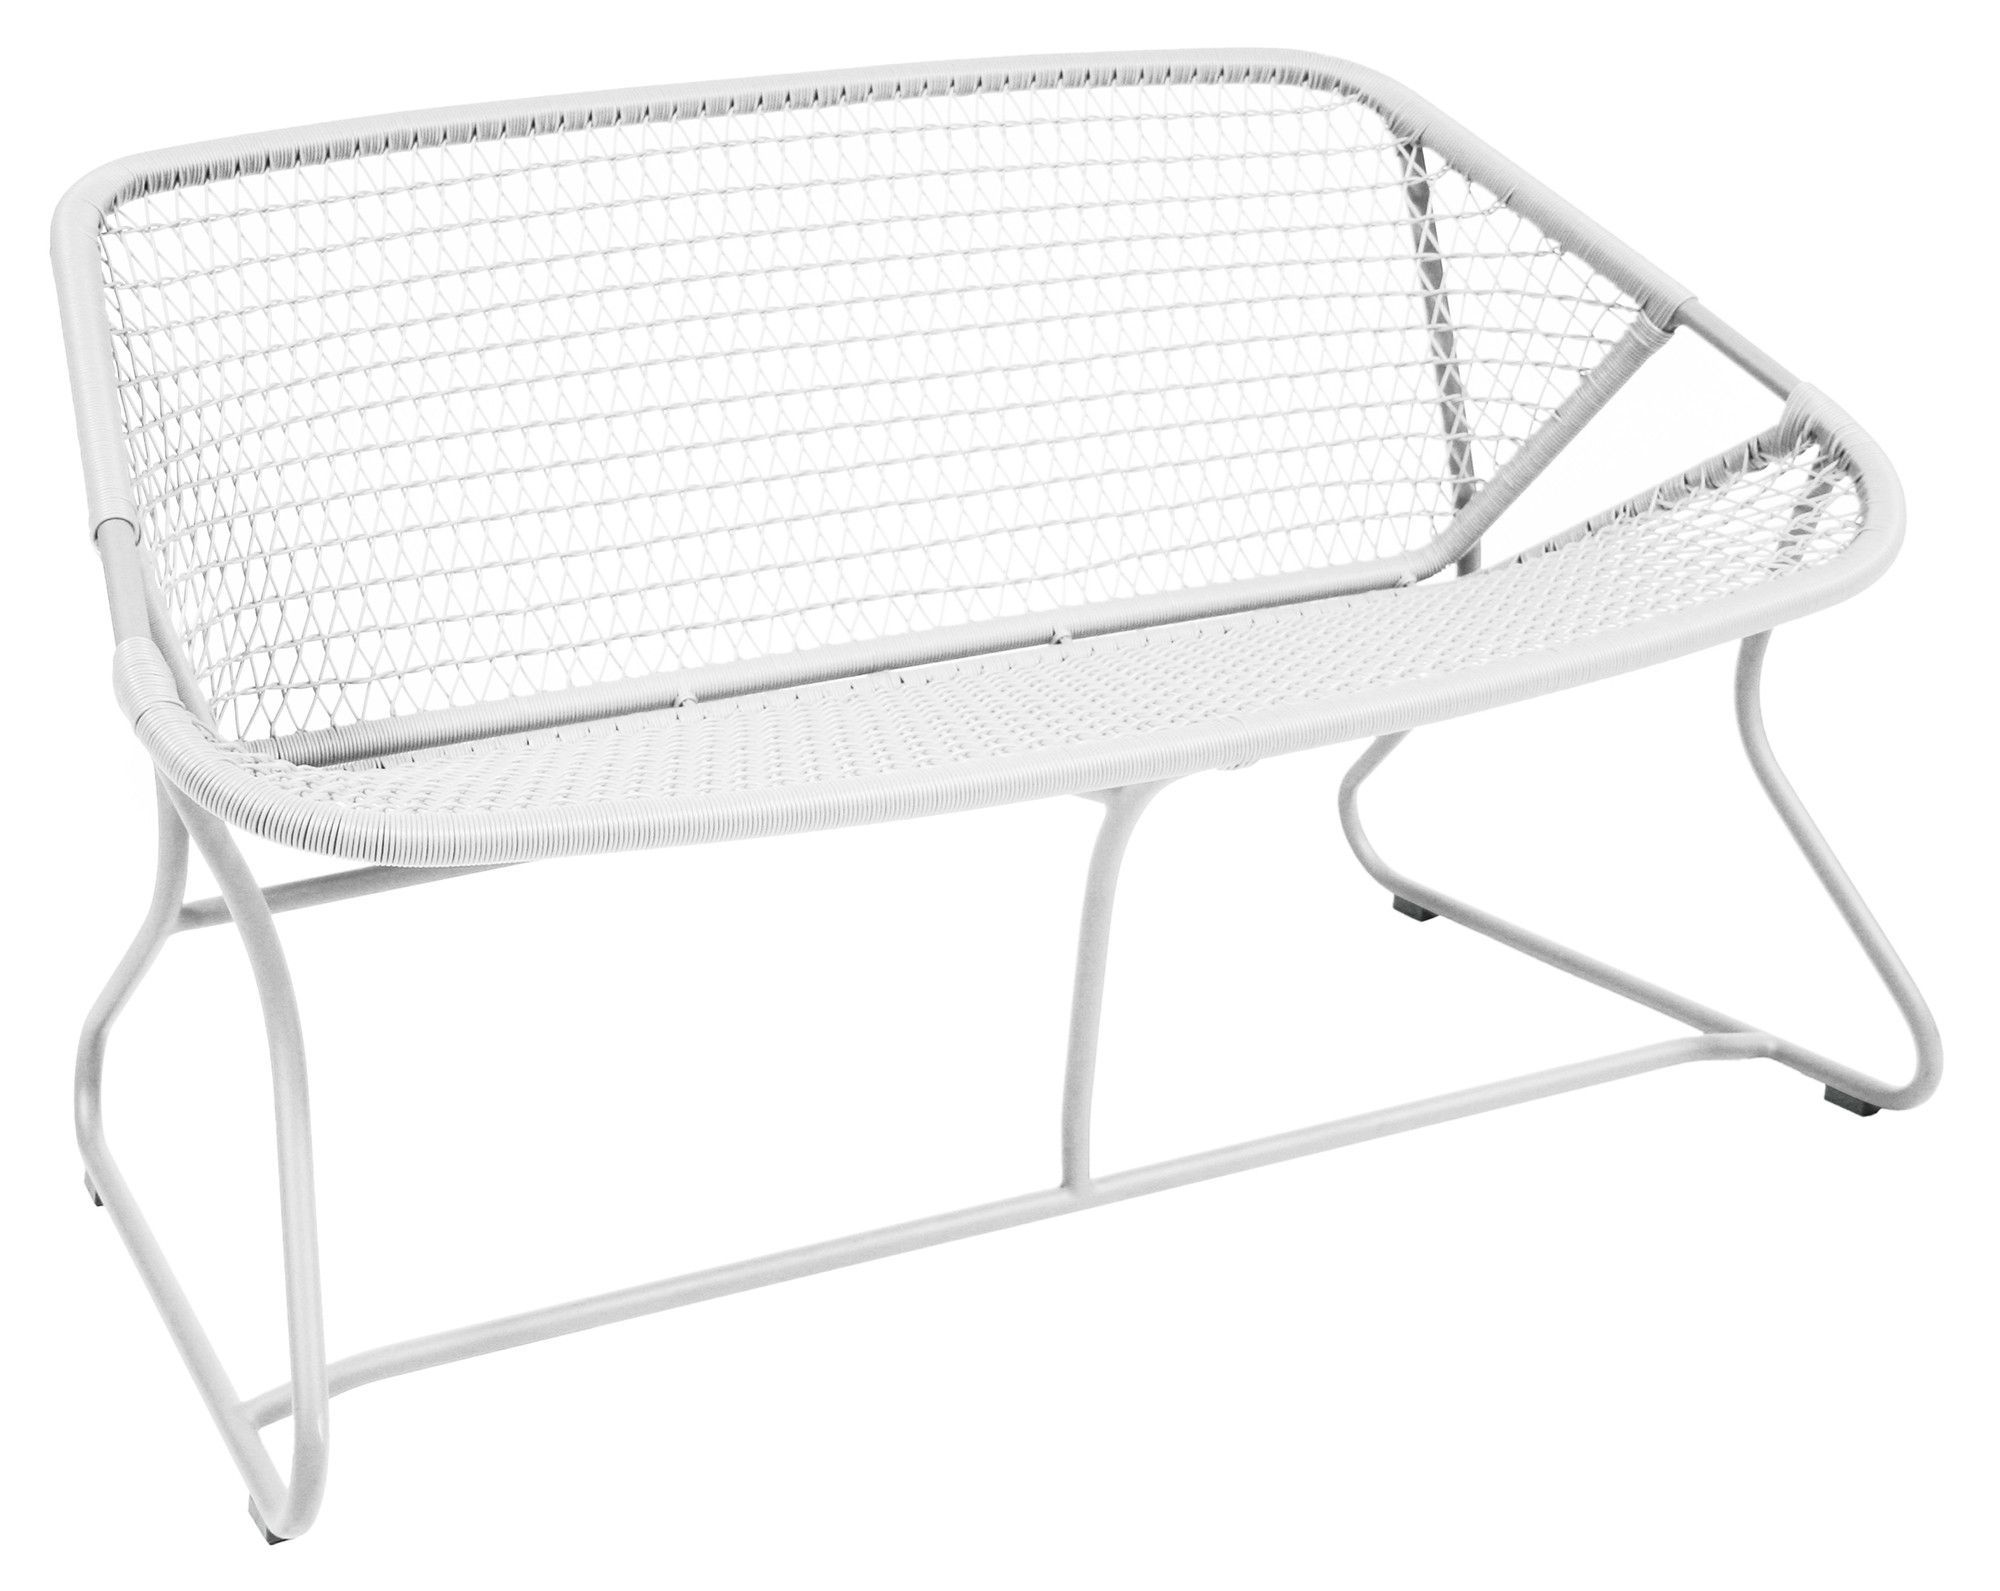 Wohndesign bilder mit shop sixties bench  bench and products